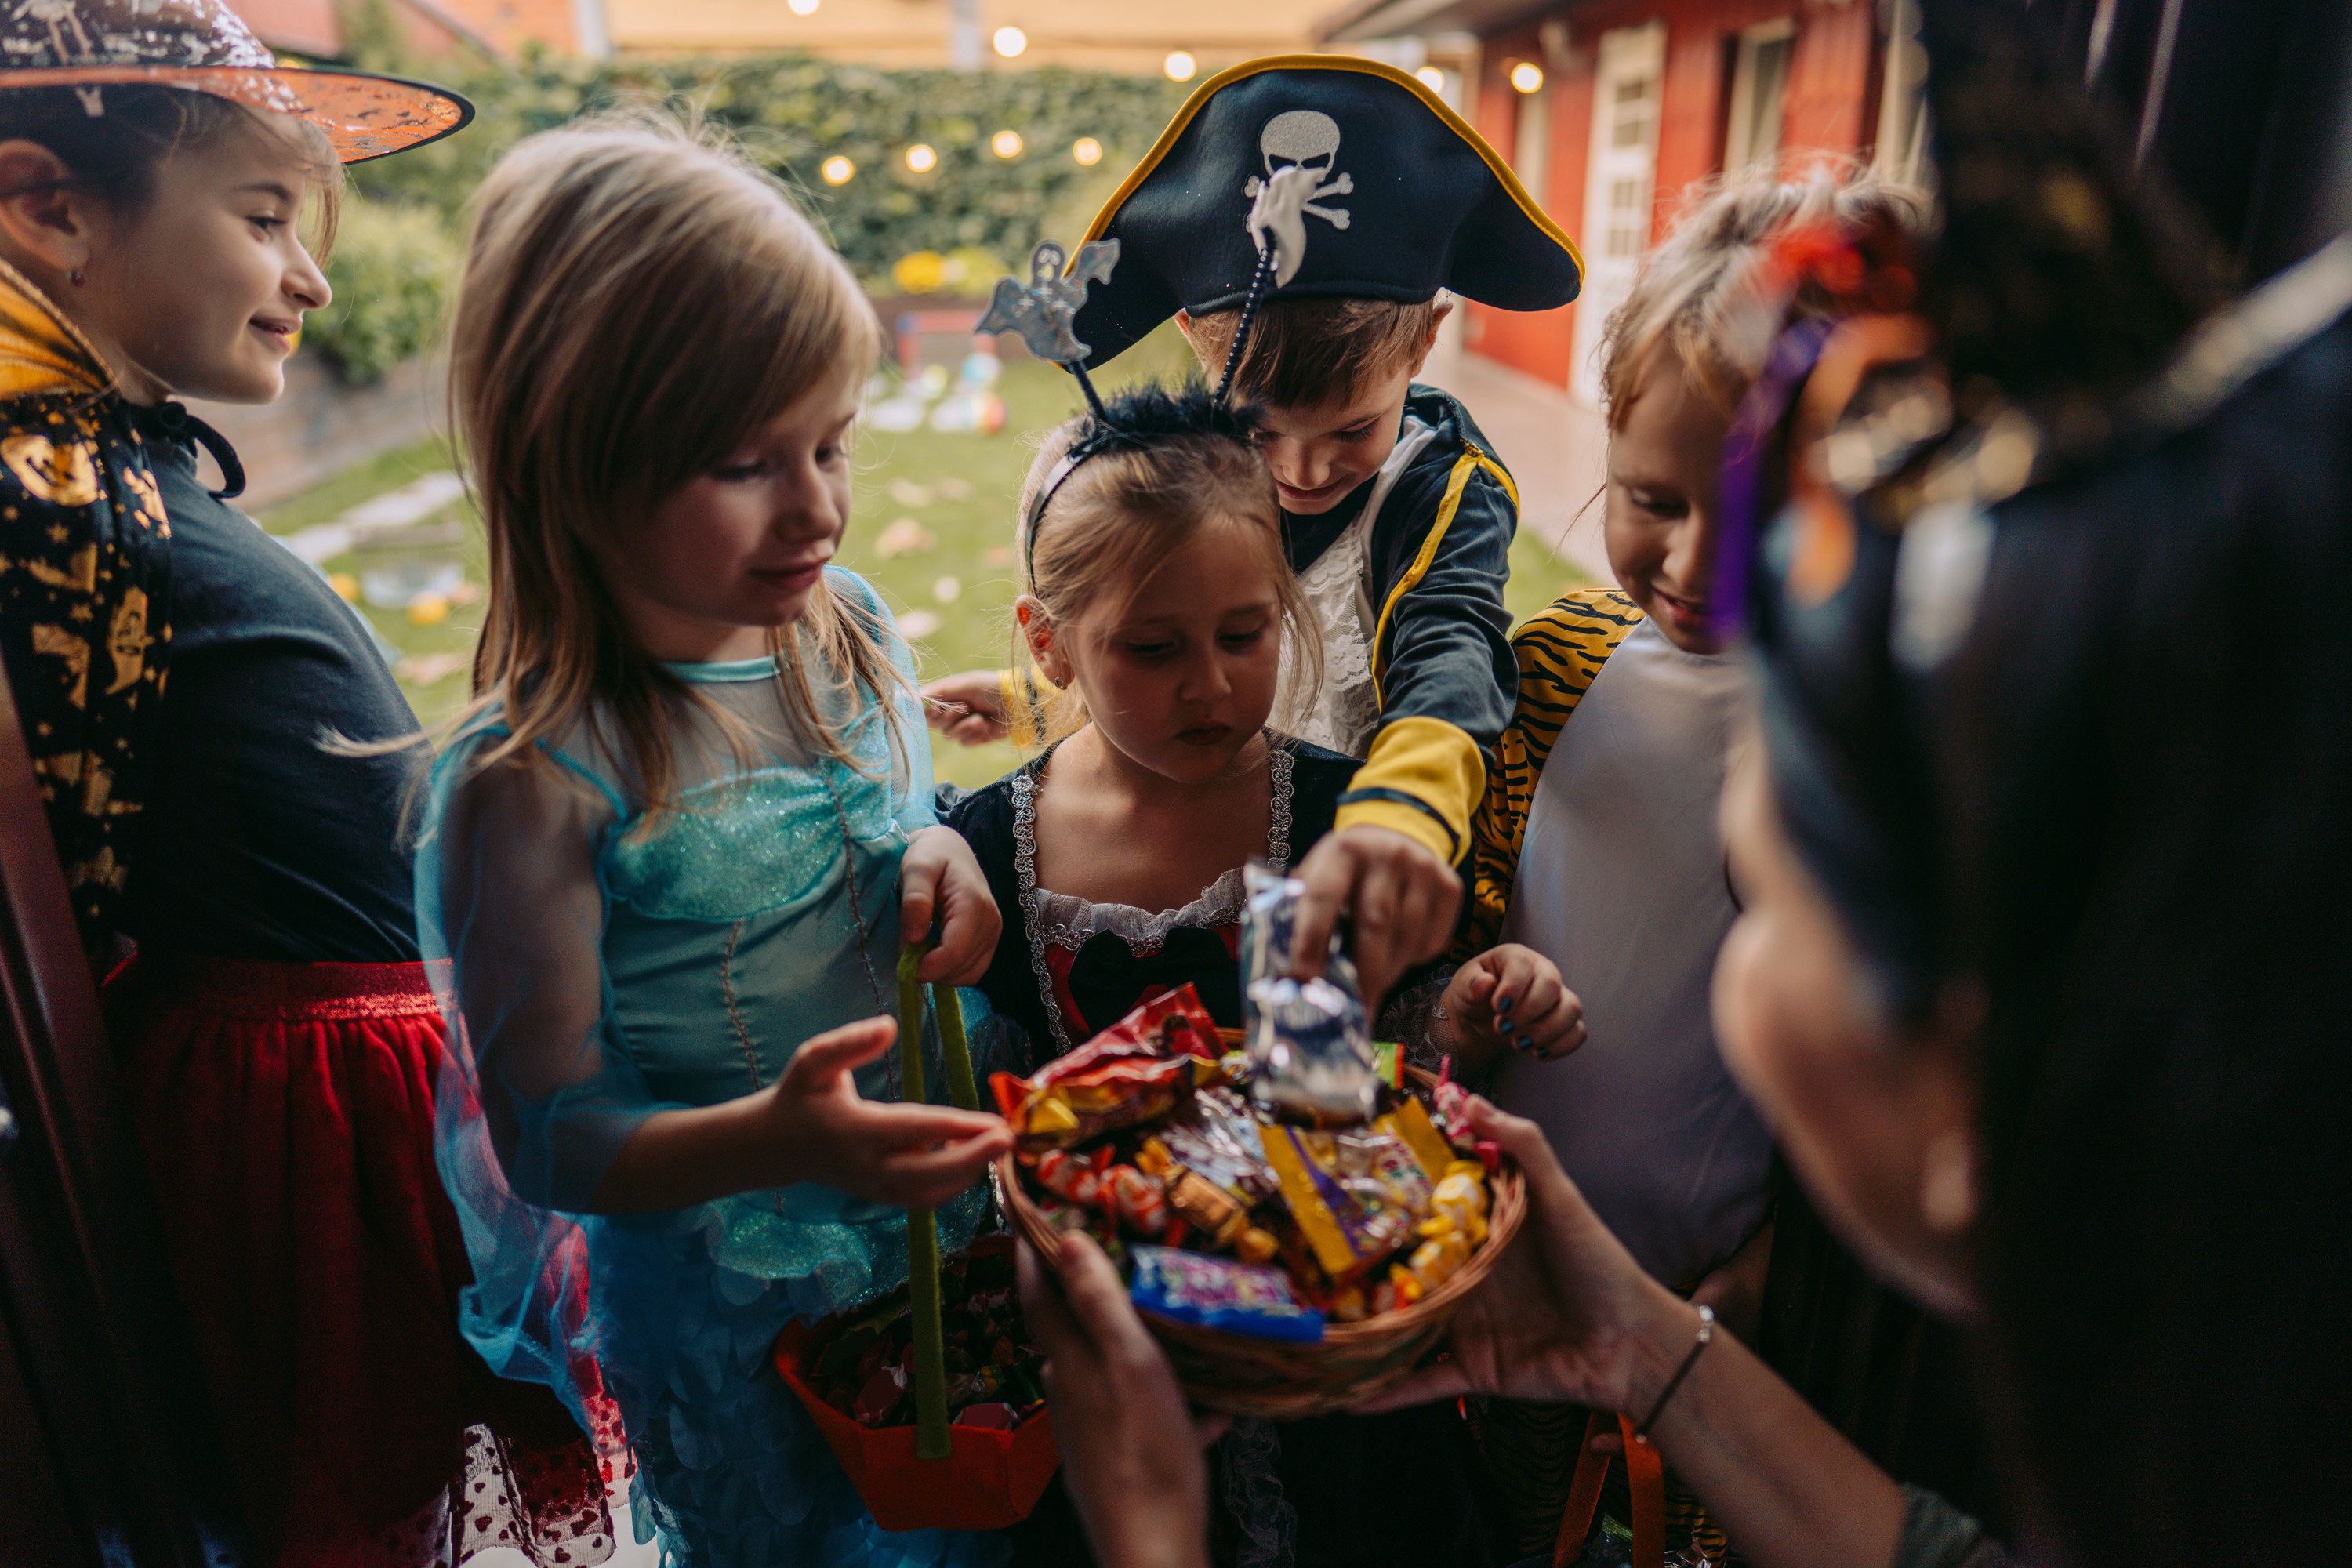 Children dressed up in Halloween costumes grabbing candy from a neighbor holding up a bowl full of treats